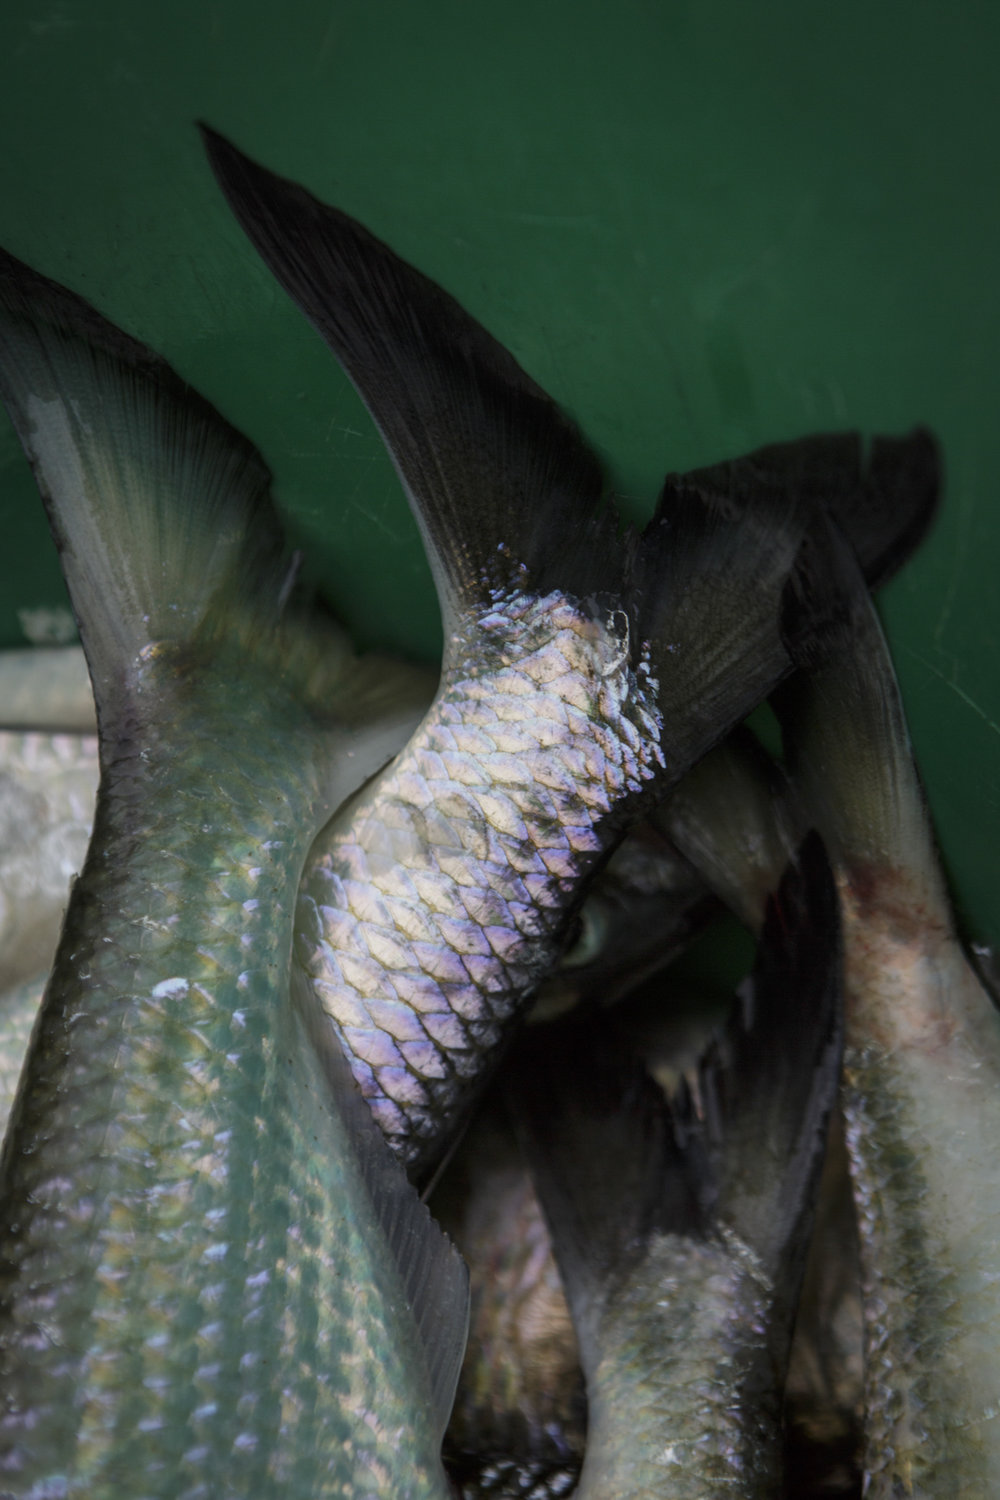 American shad are known for their shiny, reflective scales. Here, the fish have been collected for the restocking program.